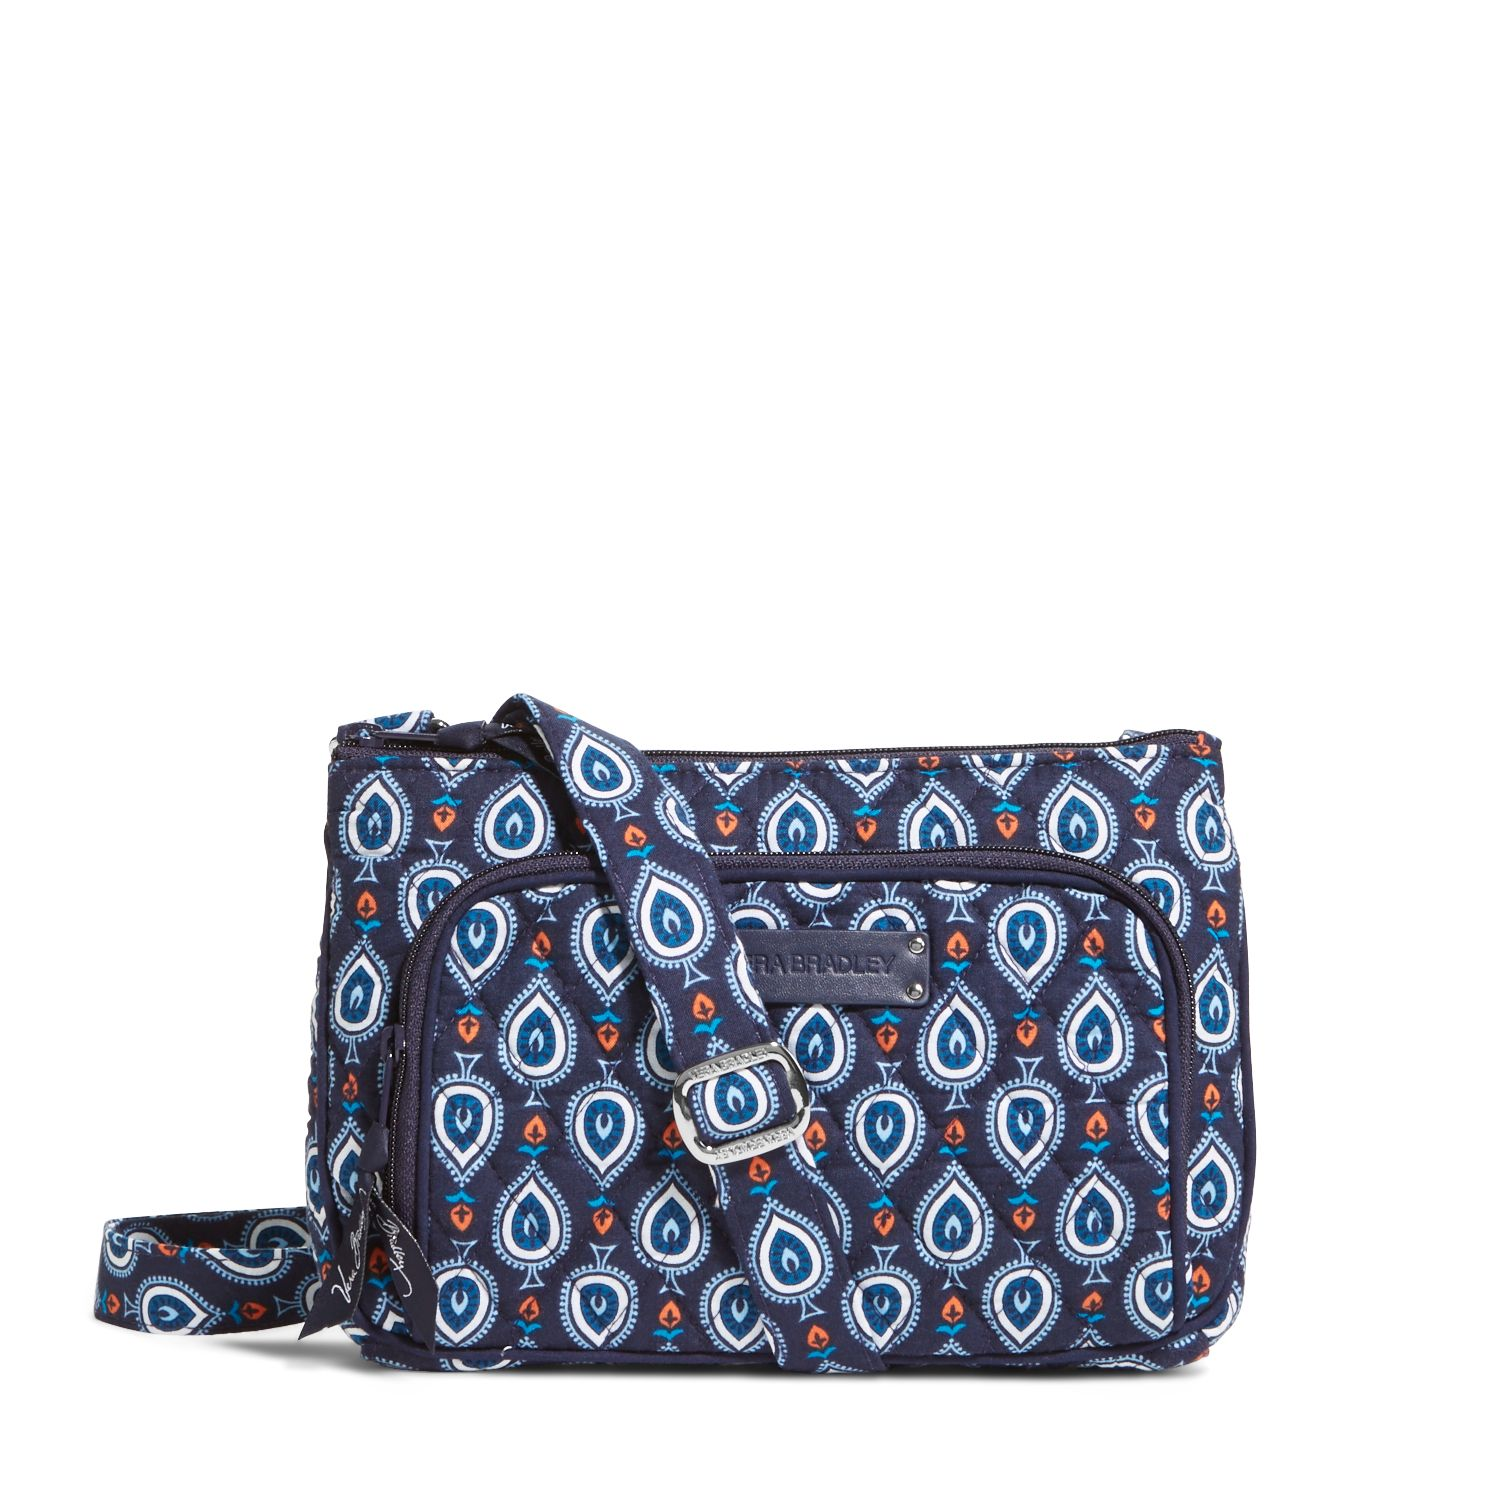 Vera Bradley Little Hipster Crossbody in Marrakesh Motifs